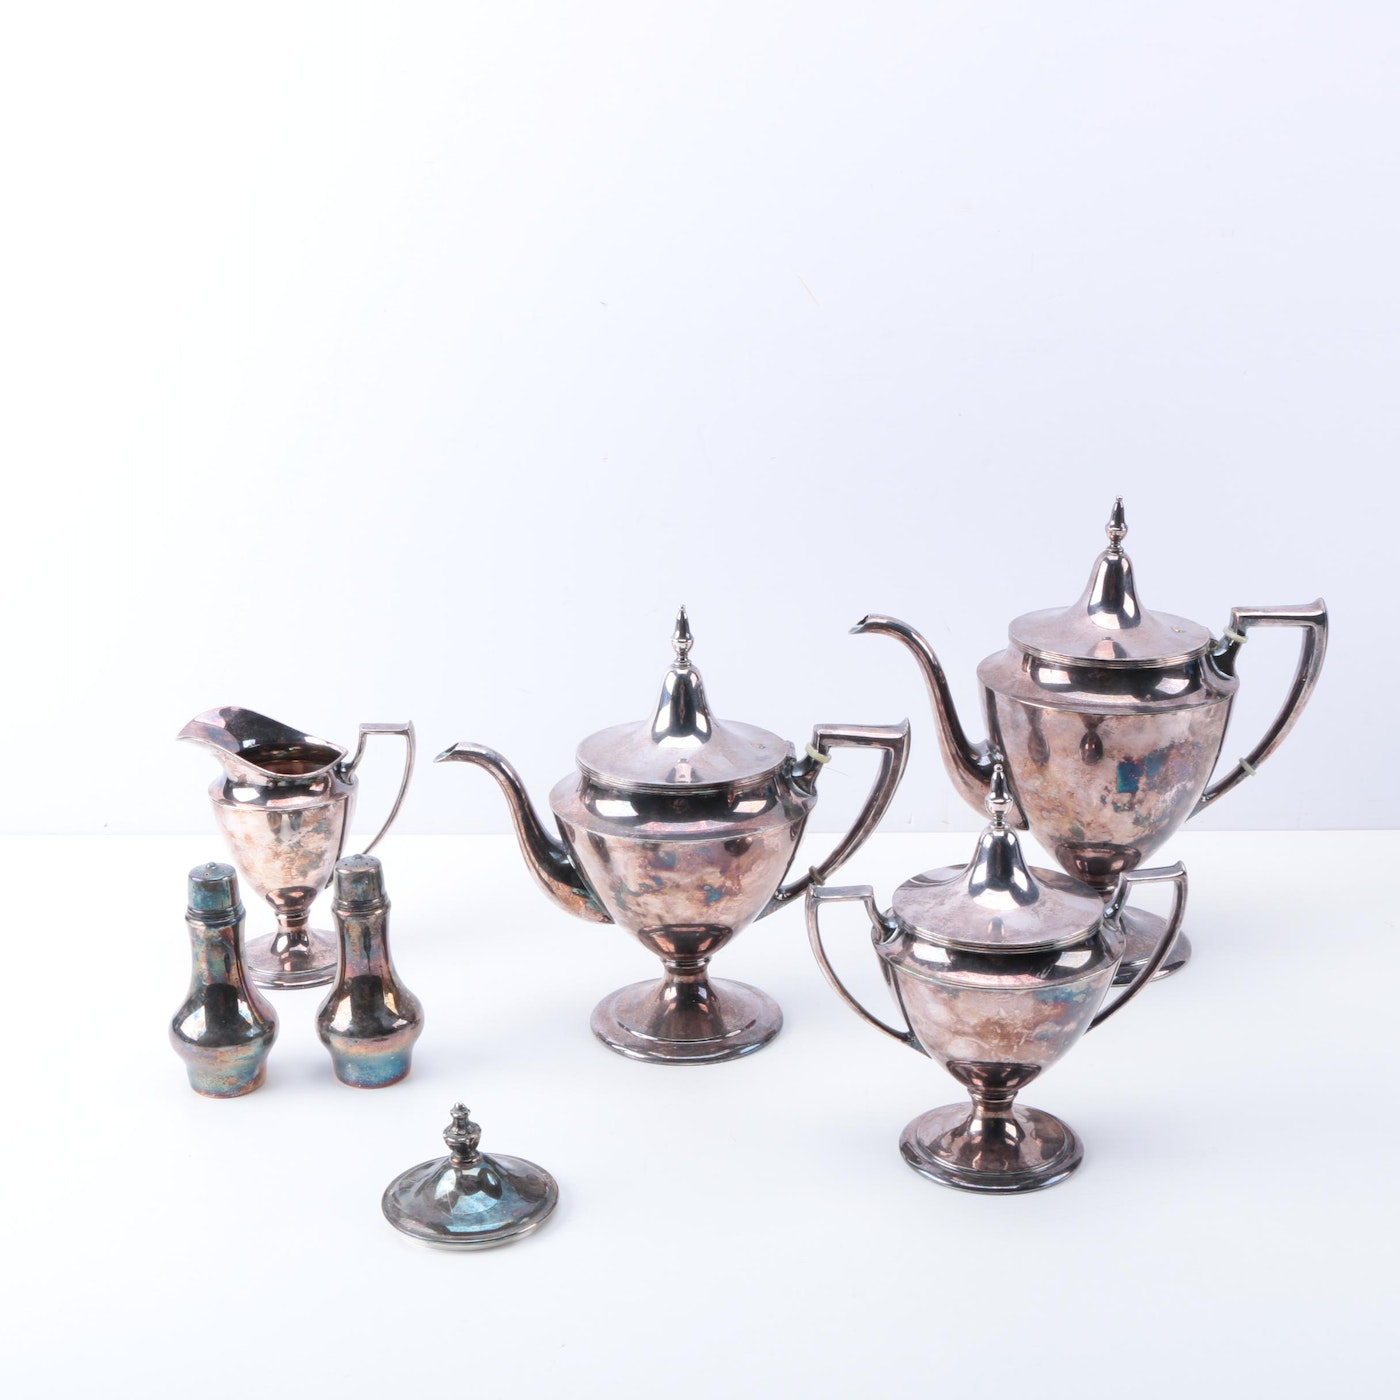 Wm A Rogers Silver Plate Marks: Vintage Pairpoint Silver Plate Tea And Coffee Set And Wm